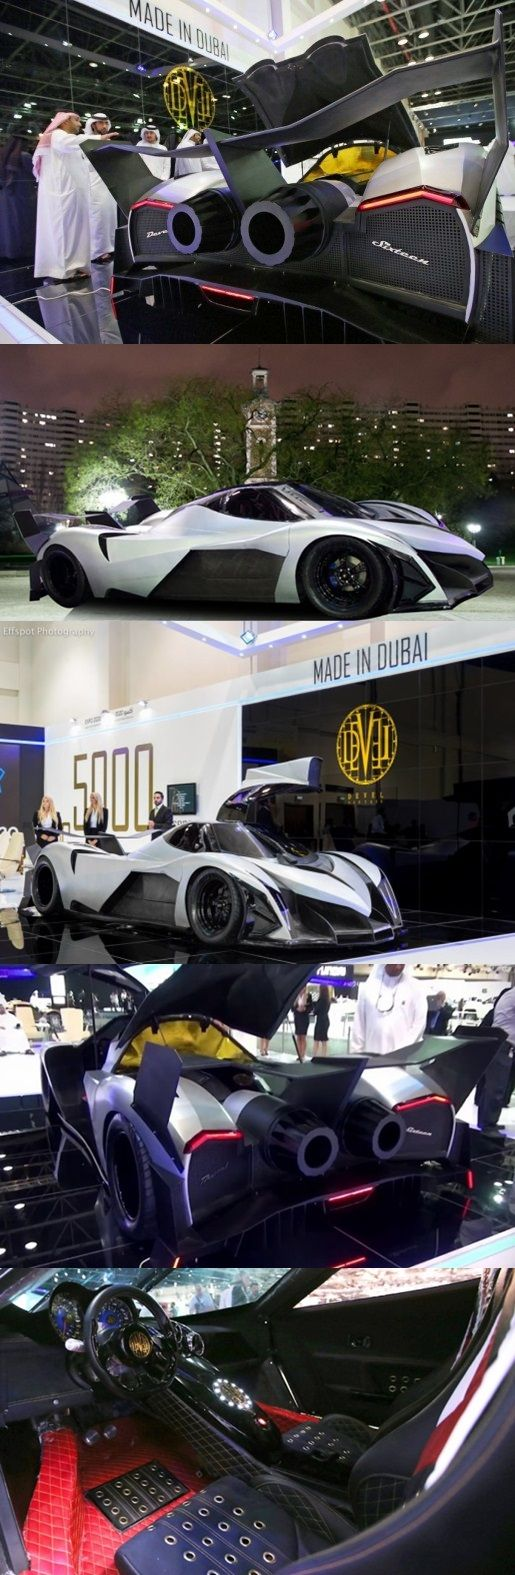 159 best super cars images on pinterest supercars dream cars and visit machine shop caf devel sixteen hyper claims 5000hp fandeluxe Images